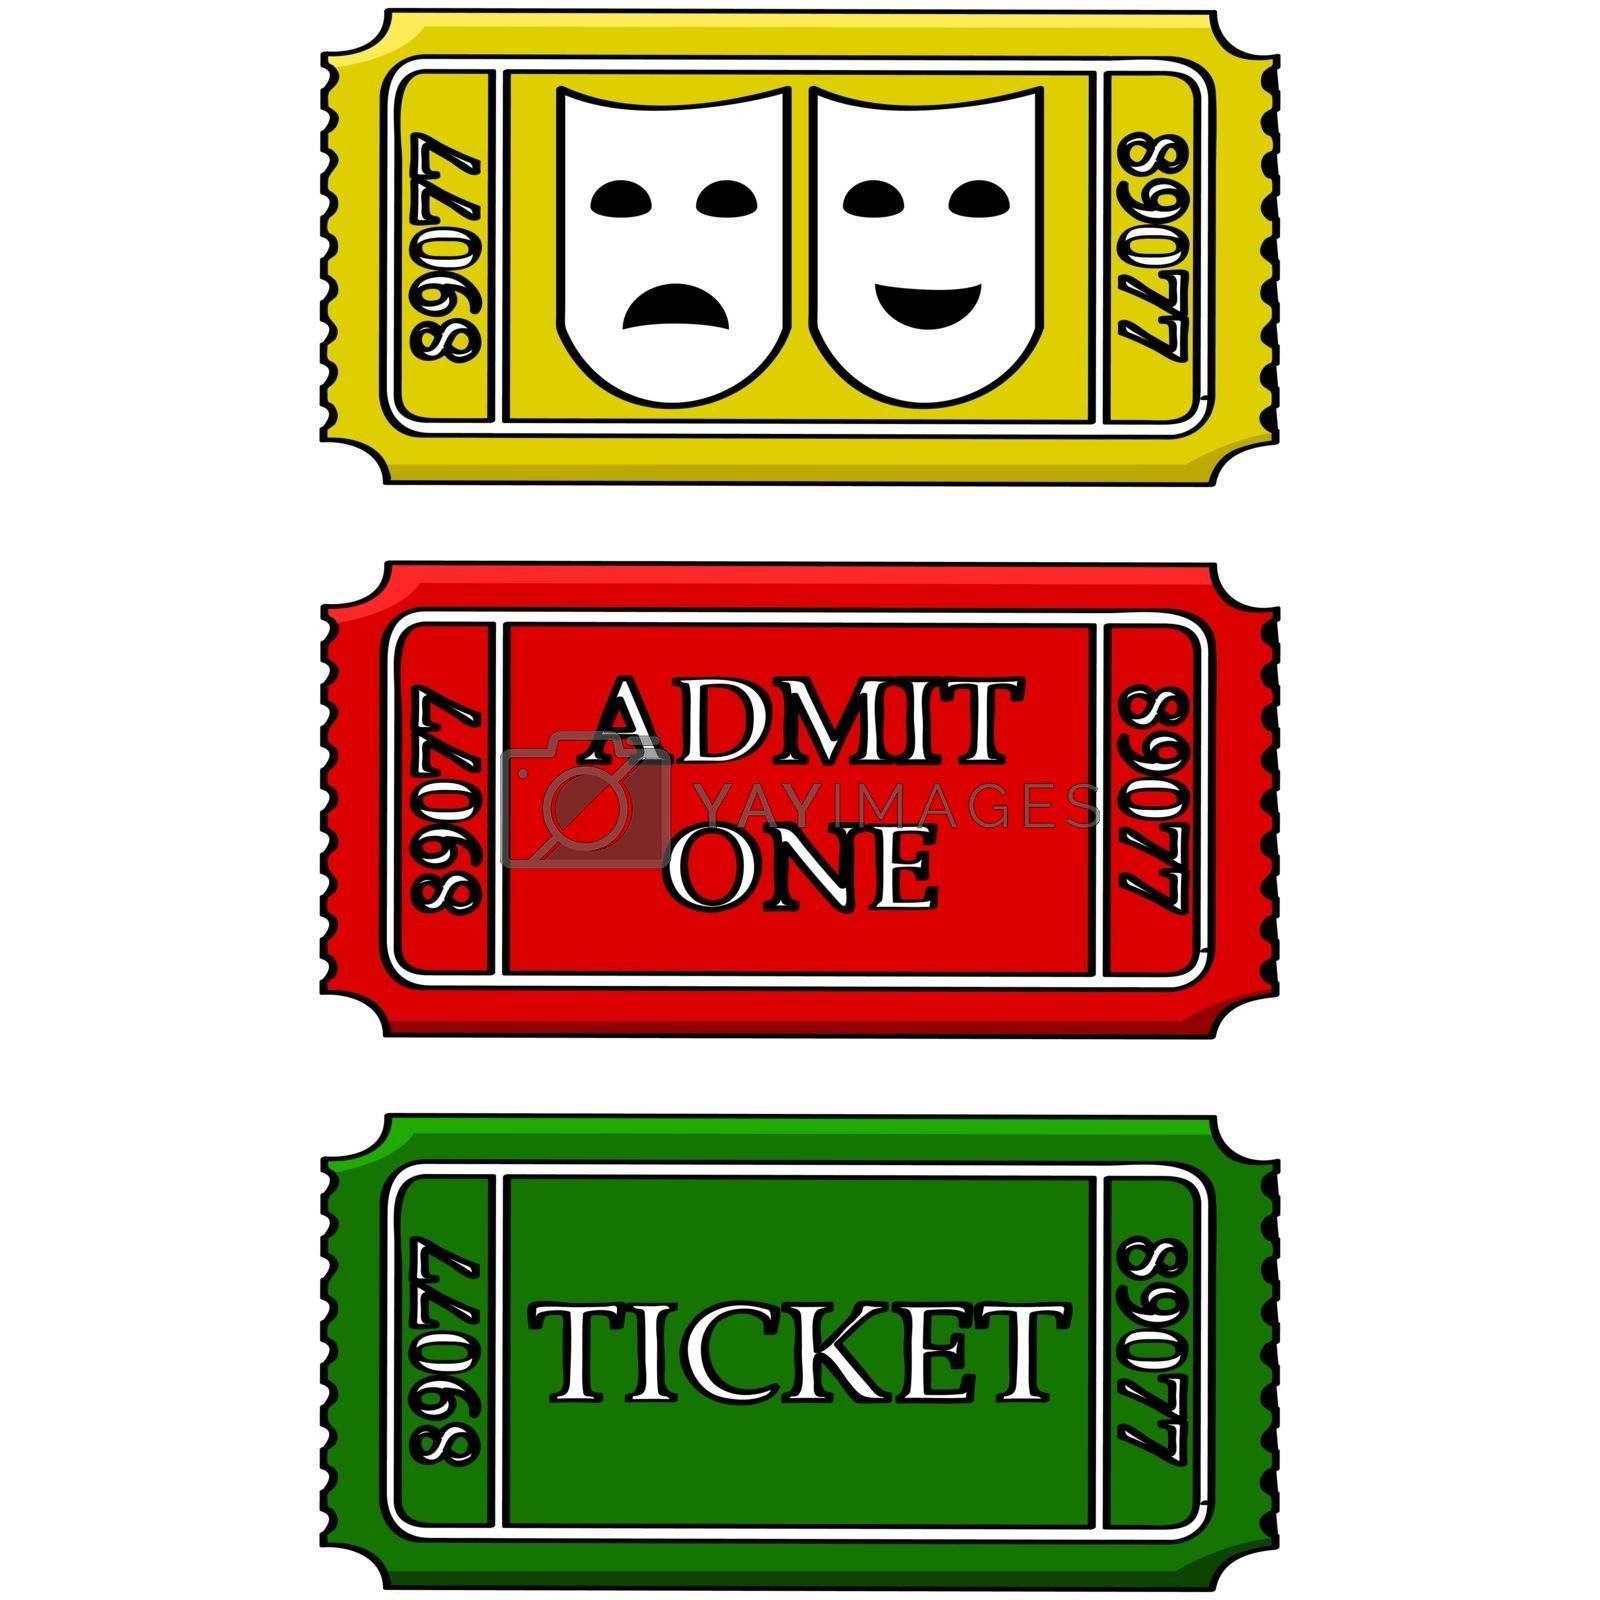 Cartoon illustration showing tickets for the movies and/or theatre